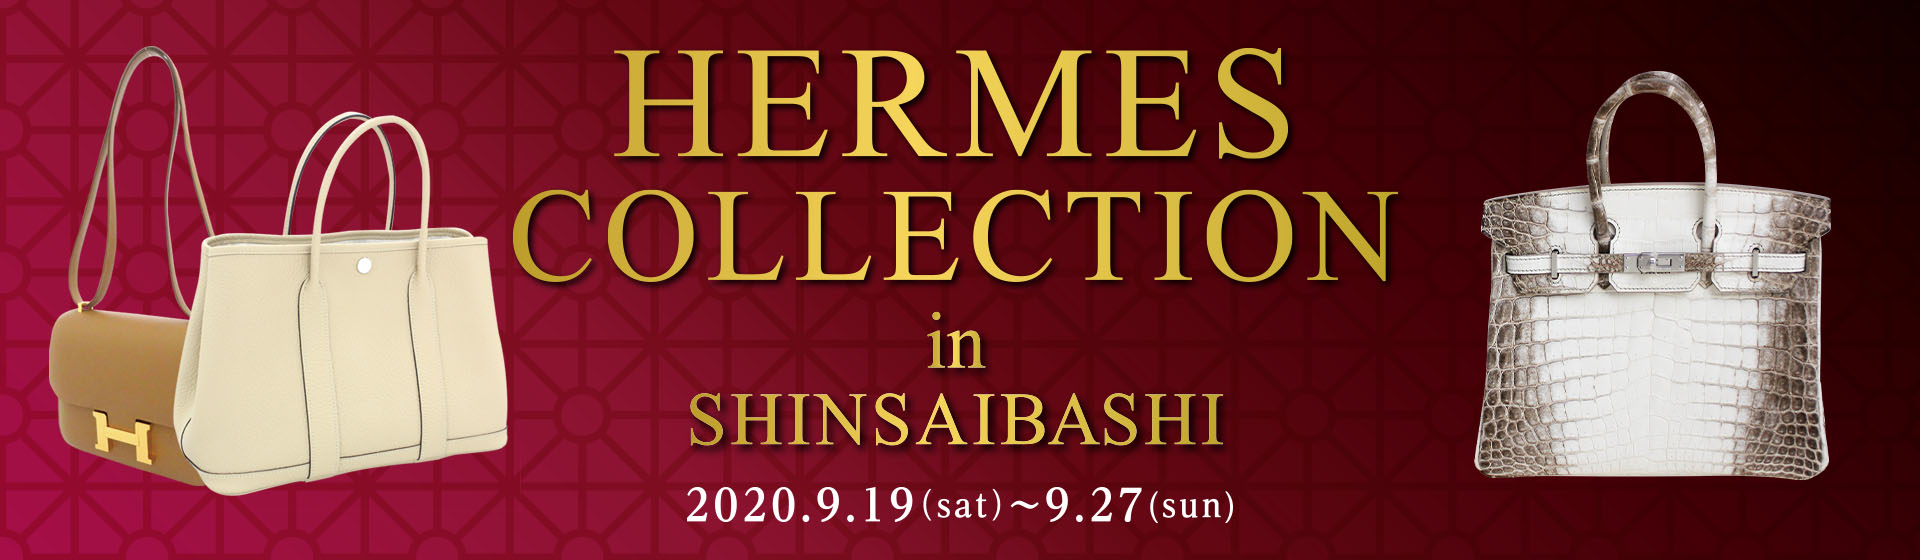 HERMES COLLECTION in SHINSAIBASHI 開催中